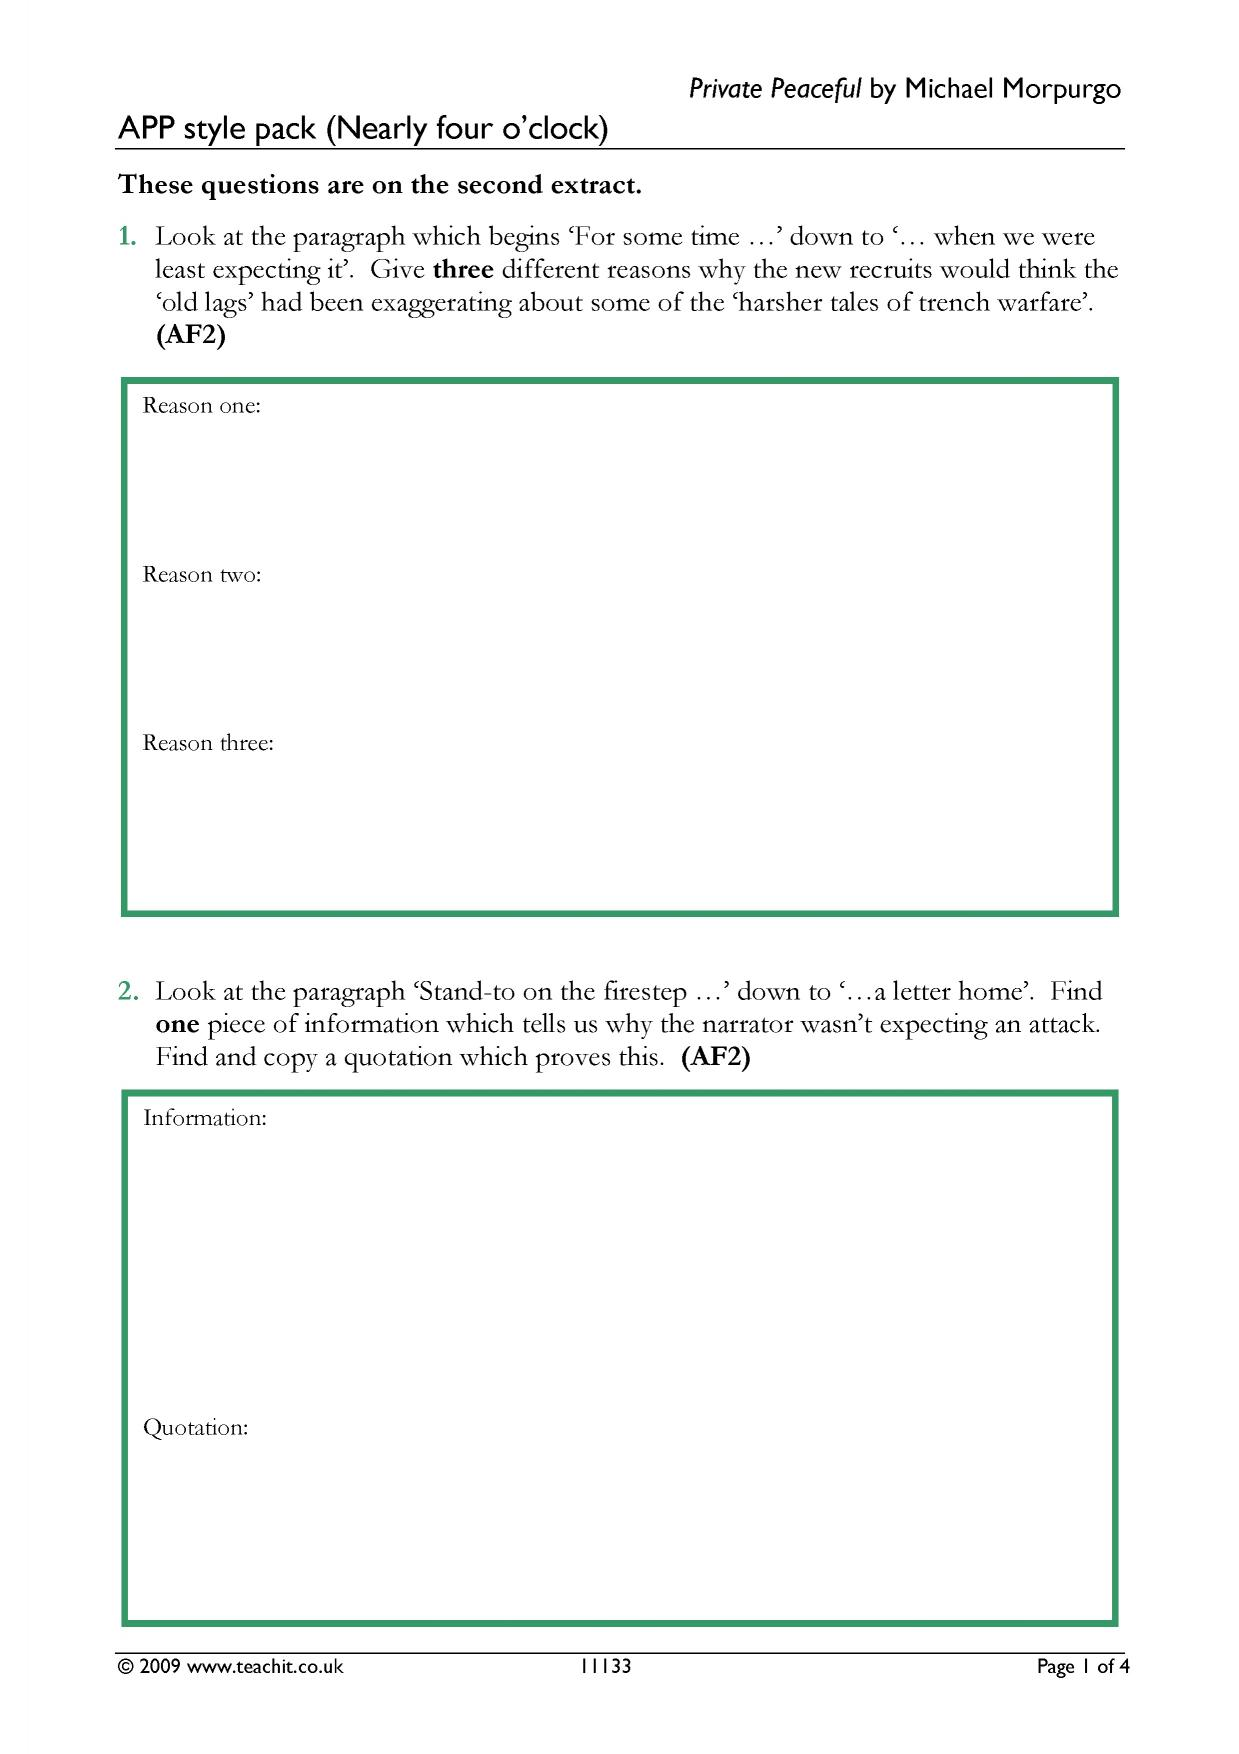 KS3 Private Peaceful by Michael Morpurgo – Trench Warfare Worksheet